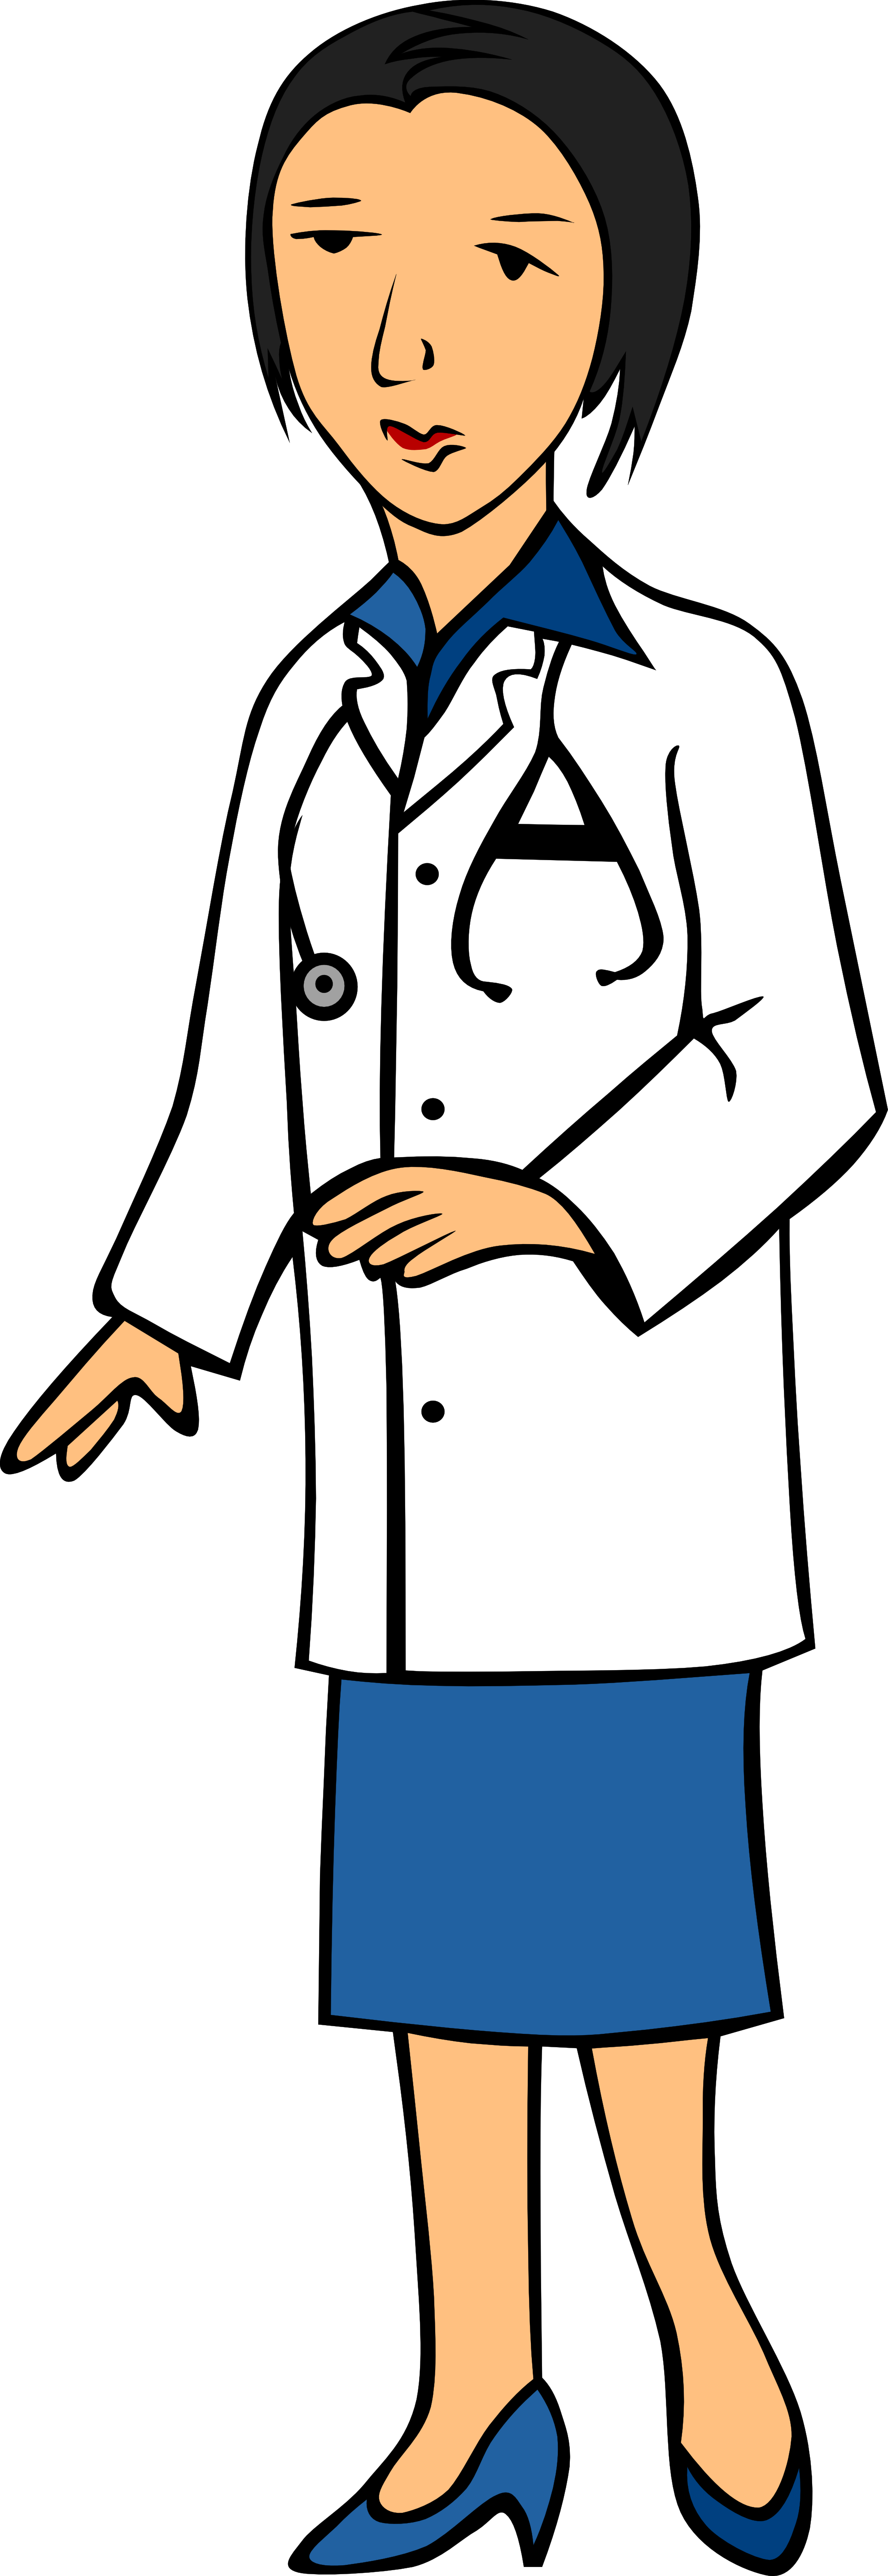 Doctor clipart woman doctor. Free transparent cliparts download